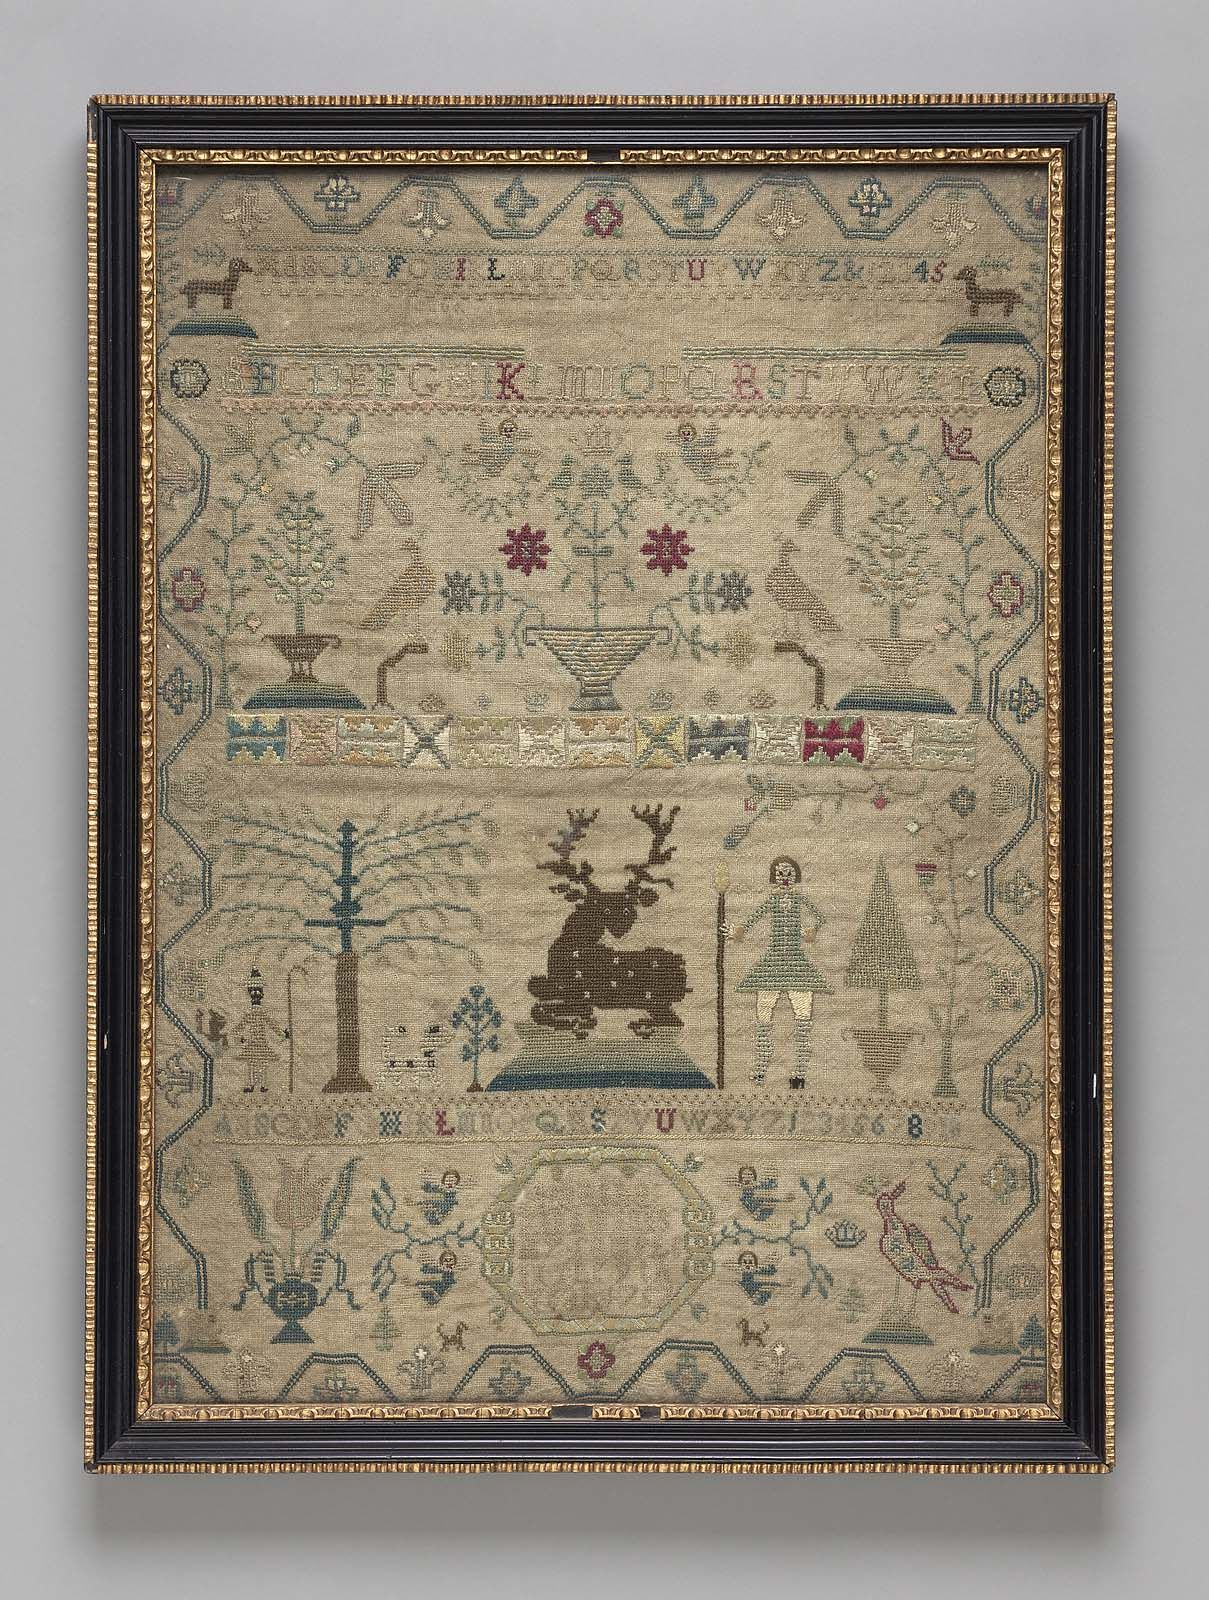 Sampler | Museum of Fine Arts, Boston - Sampler  English 1757 Embroidered by Martha King Fines (English, born in 1748 English)  Object Place, England